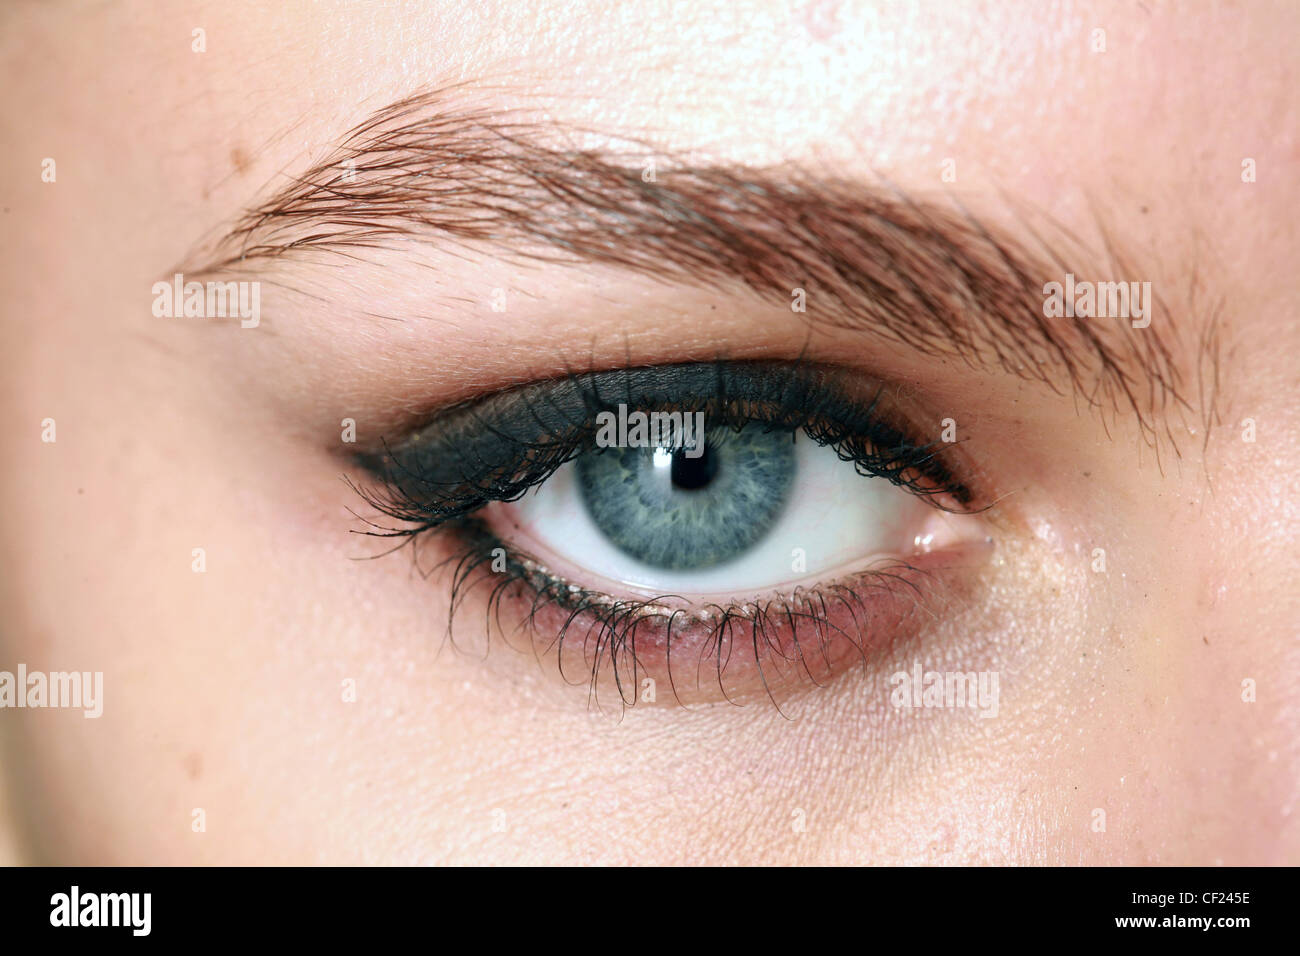 211ca3a5e Gucci Milan Backstage Spring Summer Close up of eye with brown eyeshadow  and dark blue eyeliner